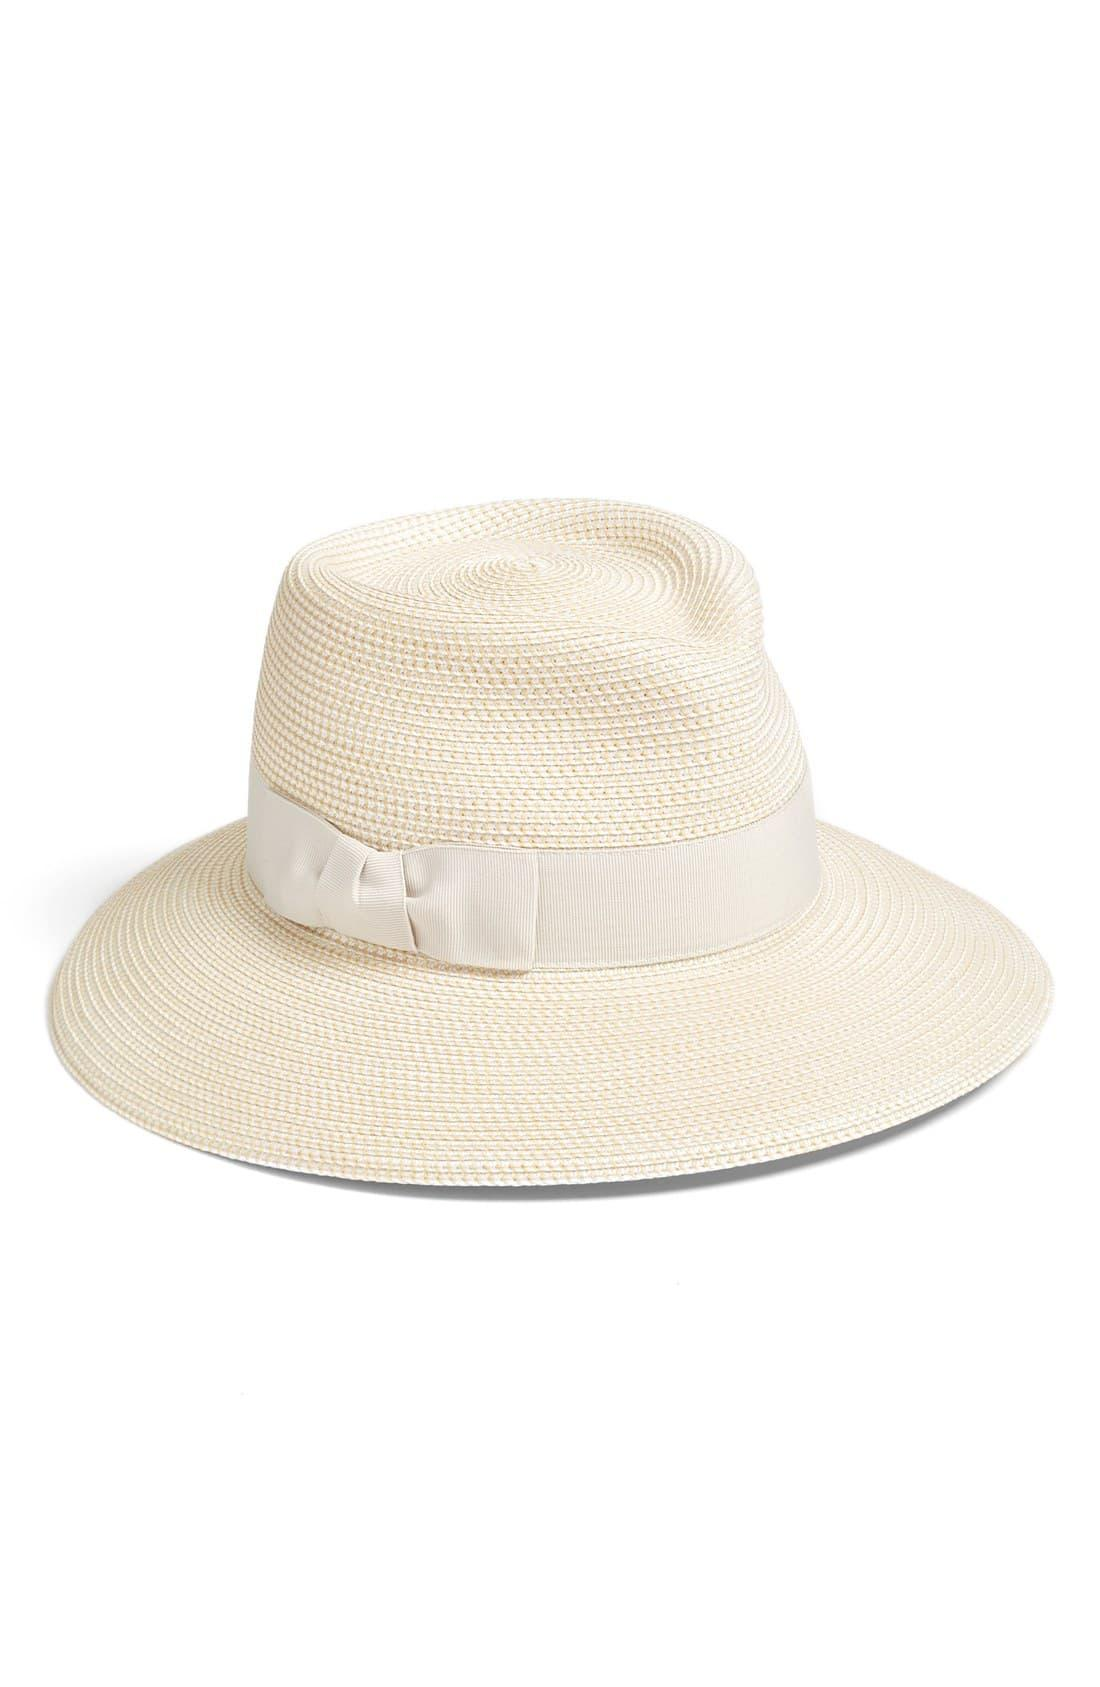 7f34af6b Eric Javits 'phoenix' Packable Fedora Sun Hat in Brown - Lyst